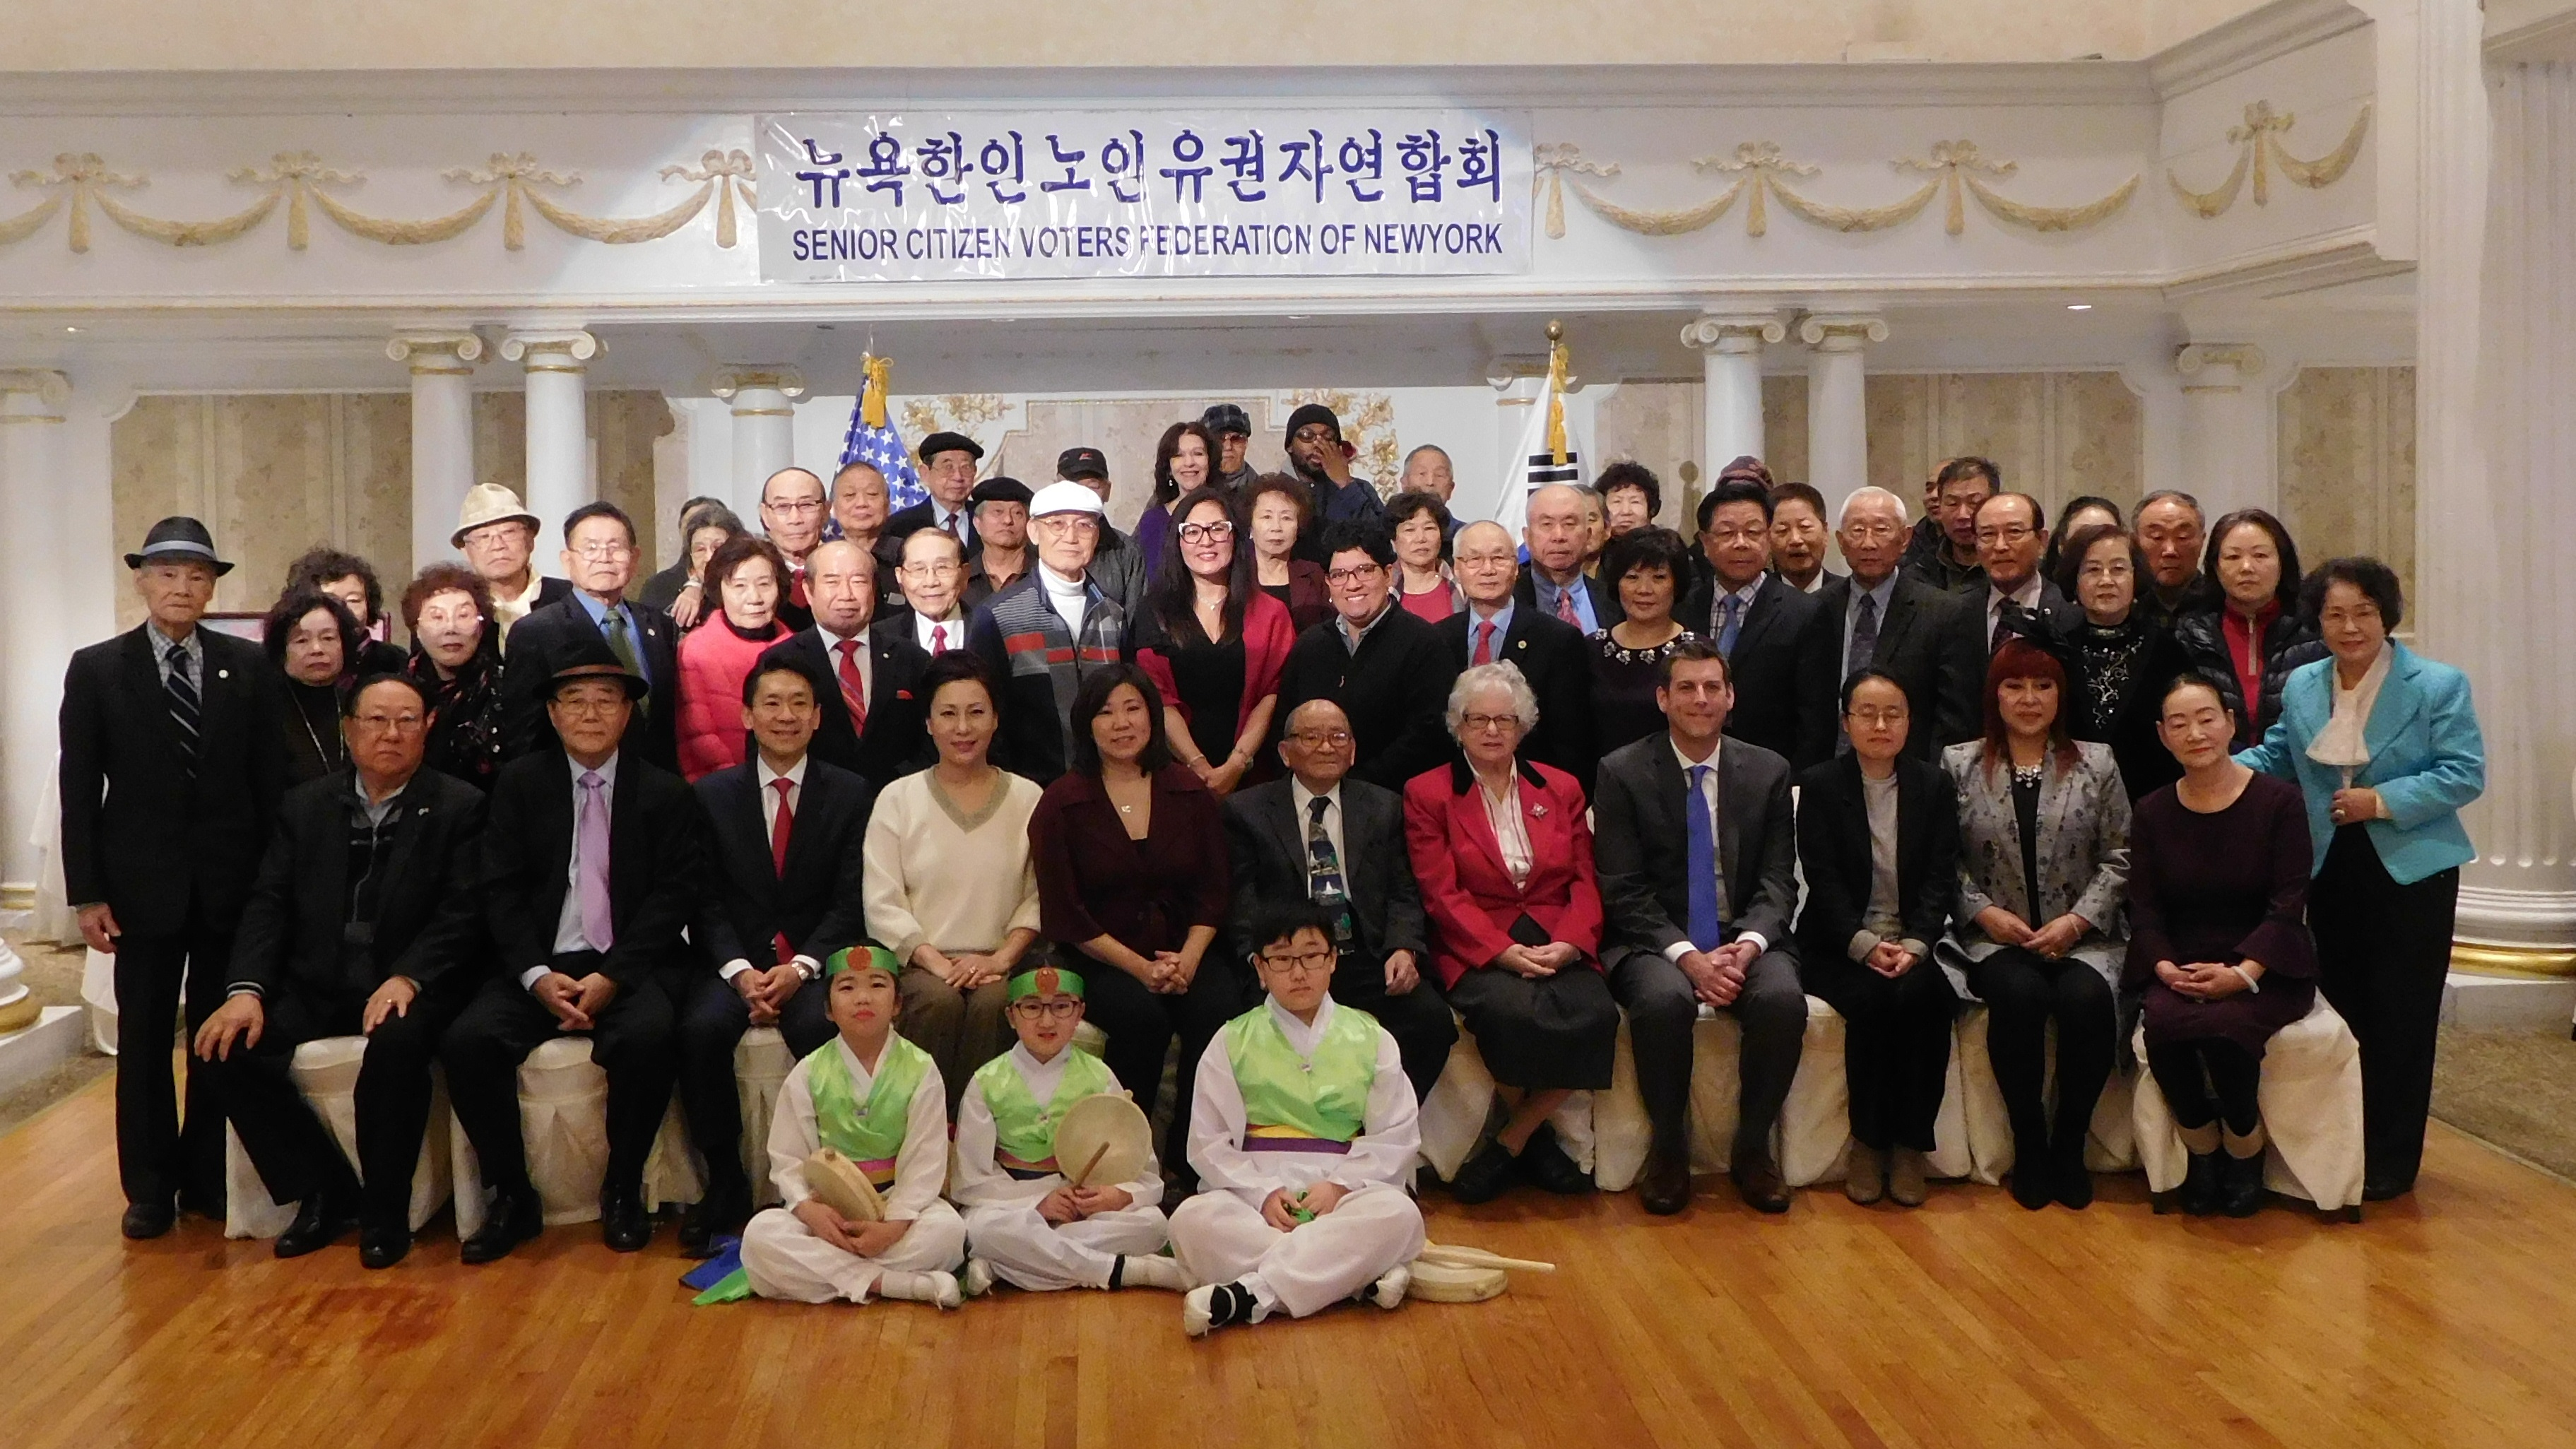 On December 29, 2018, Assemblyman Braunstein attended the Korean American Senior Citizen Voter's Federation of New York End of Year Event.